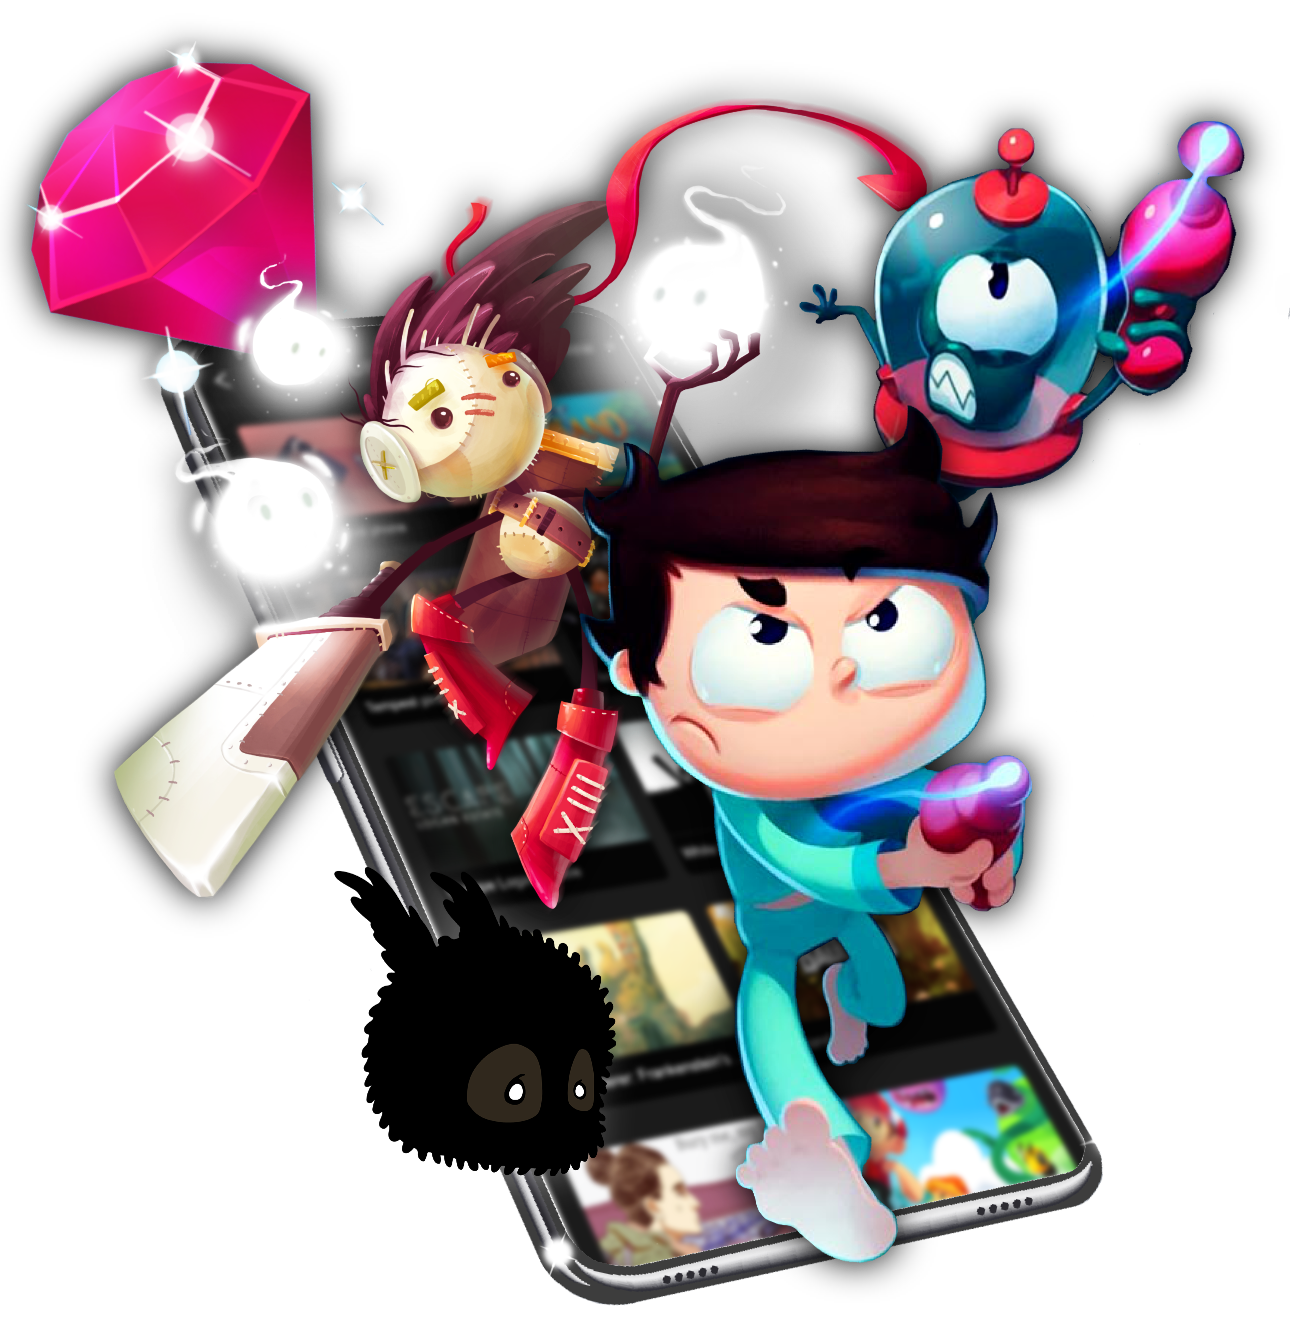 Hundreds of mobile games available instantly